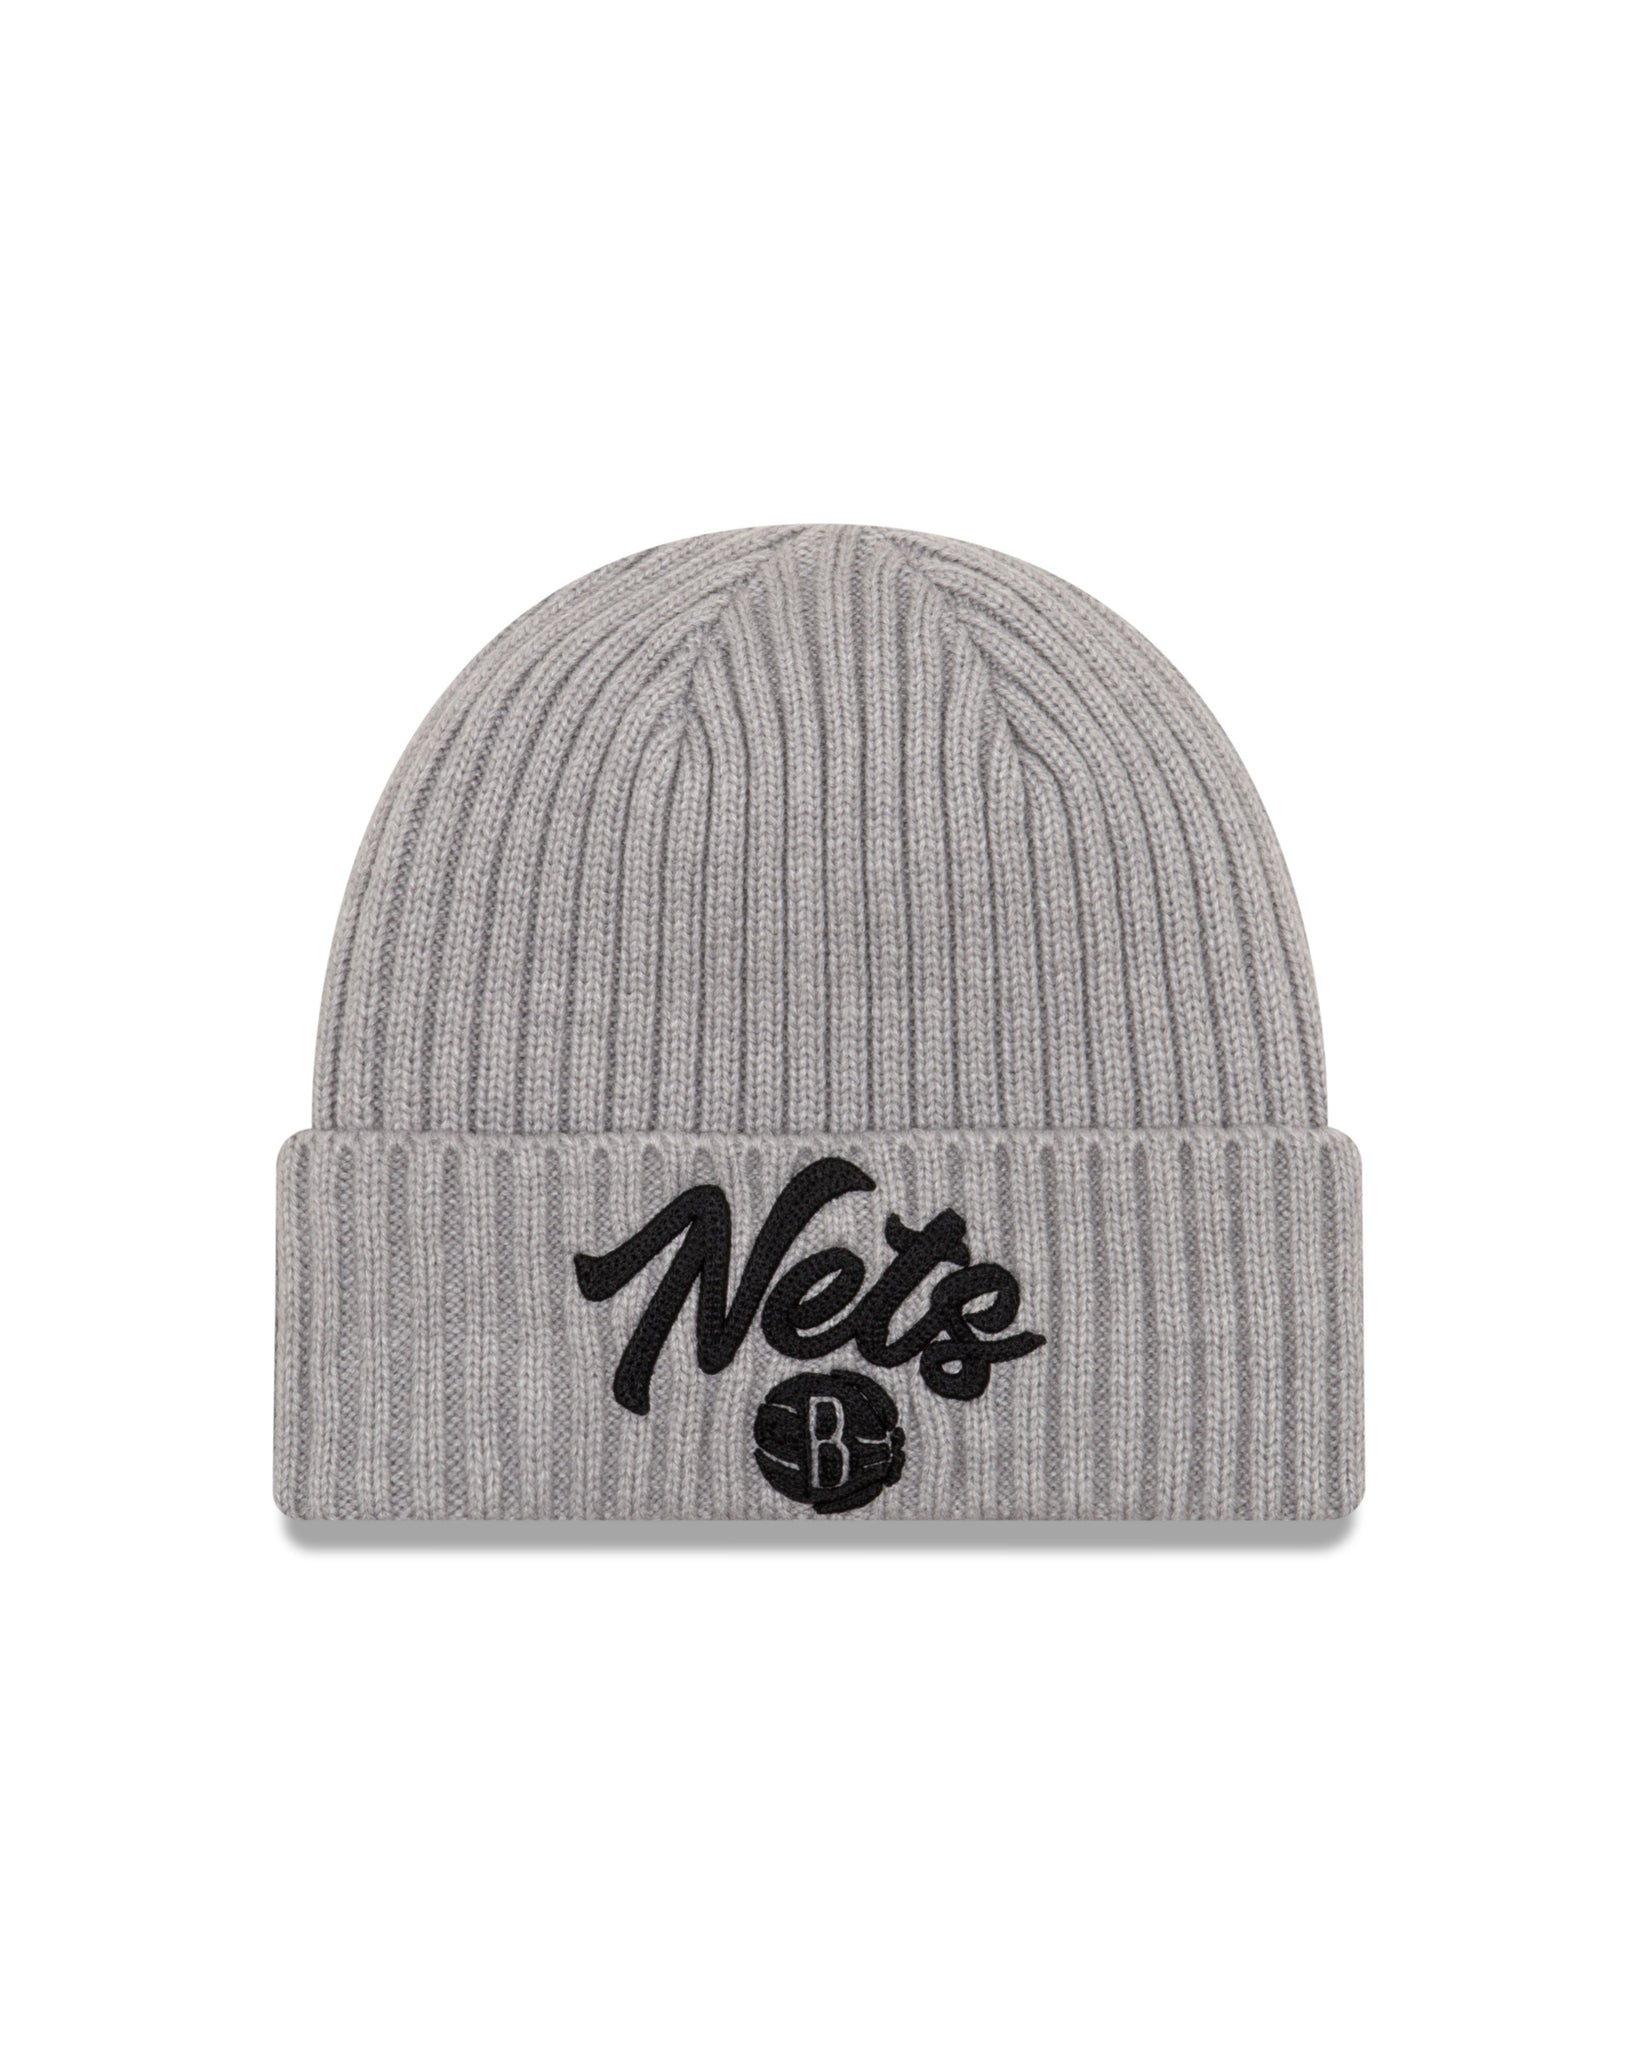 Brooklyn Nets New Era 2020 NBA Draft Collection Knit Beanie - NetsStore.com